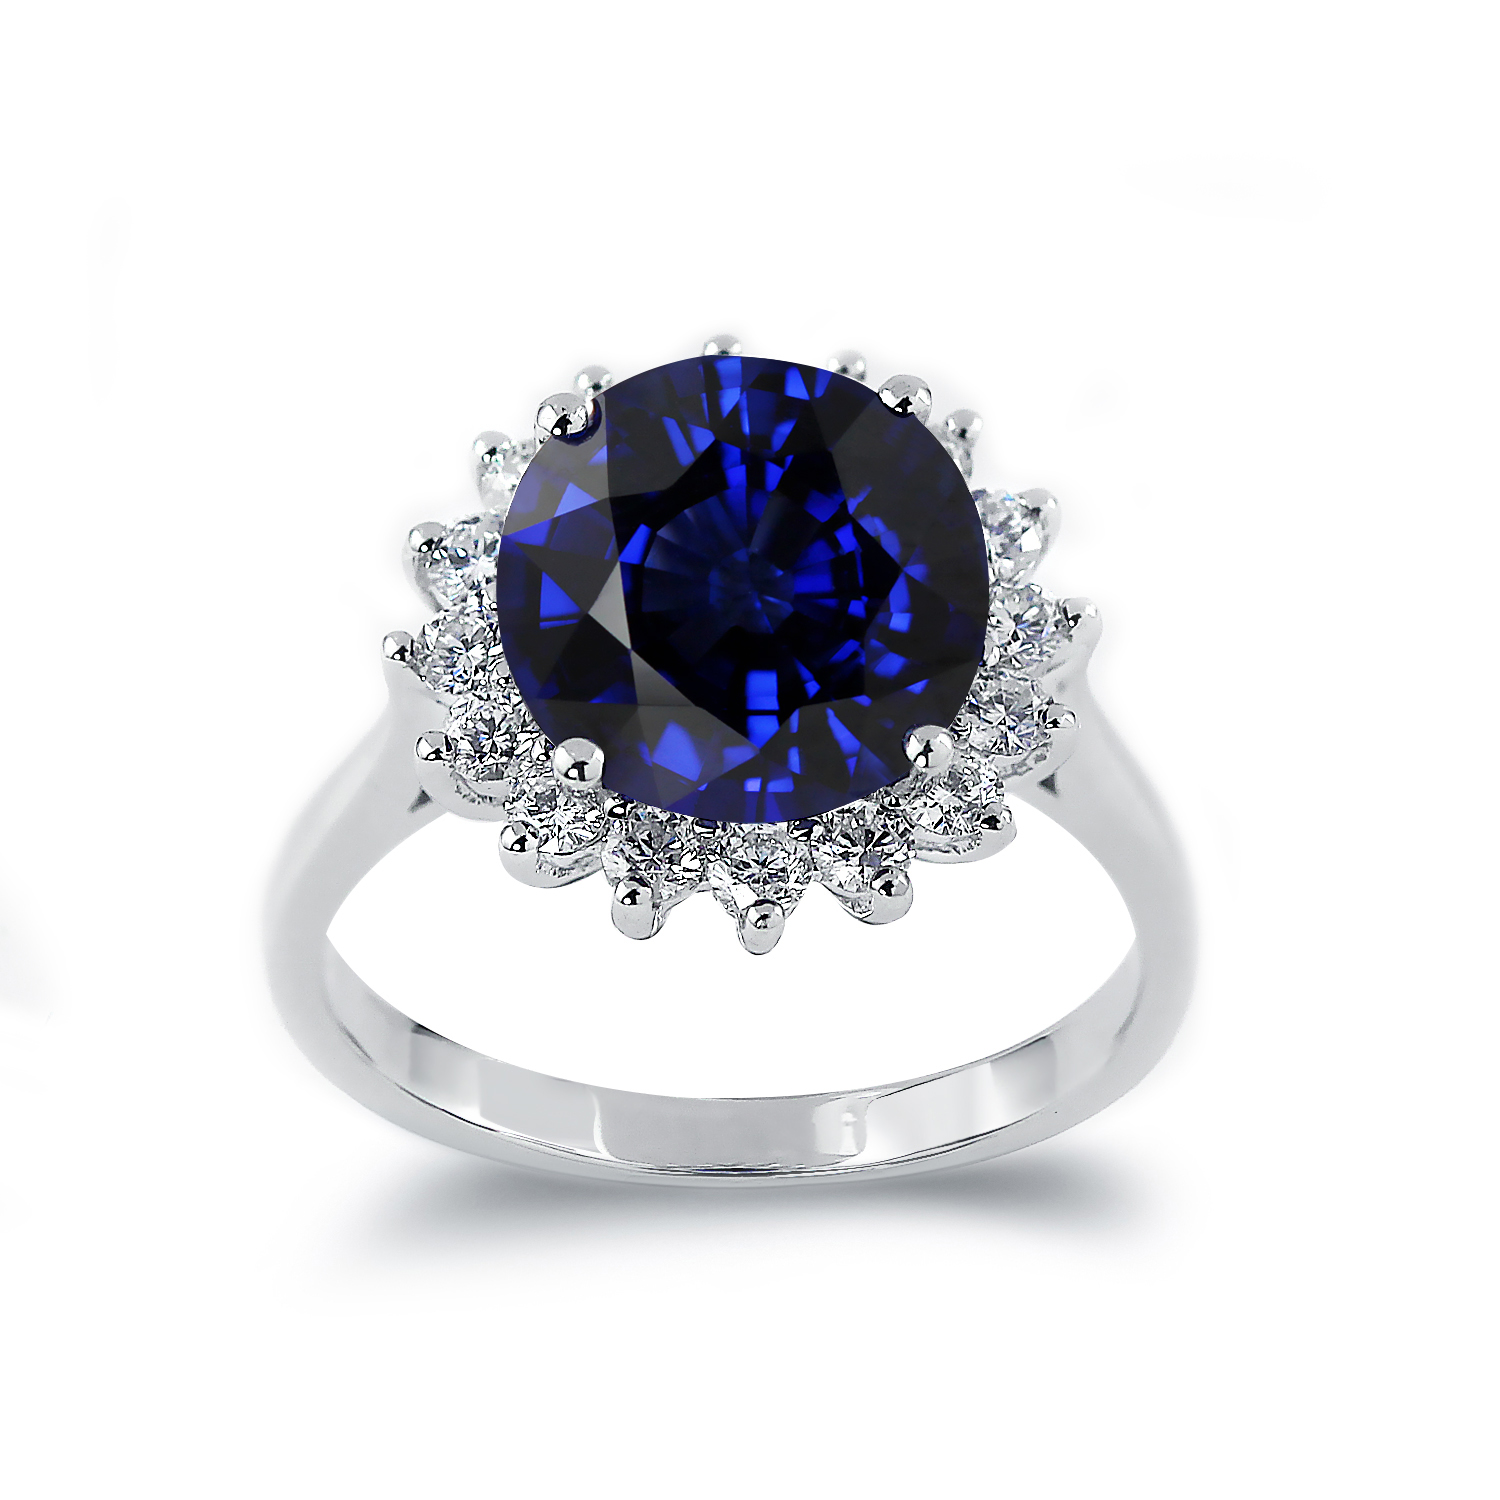 Morgan Princess Diana Inspired Halo Blue Sapphire Diamond Ring in 18K White Gold With 4 carat Round Blue Sapphire